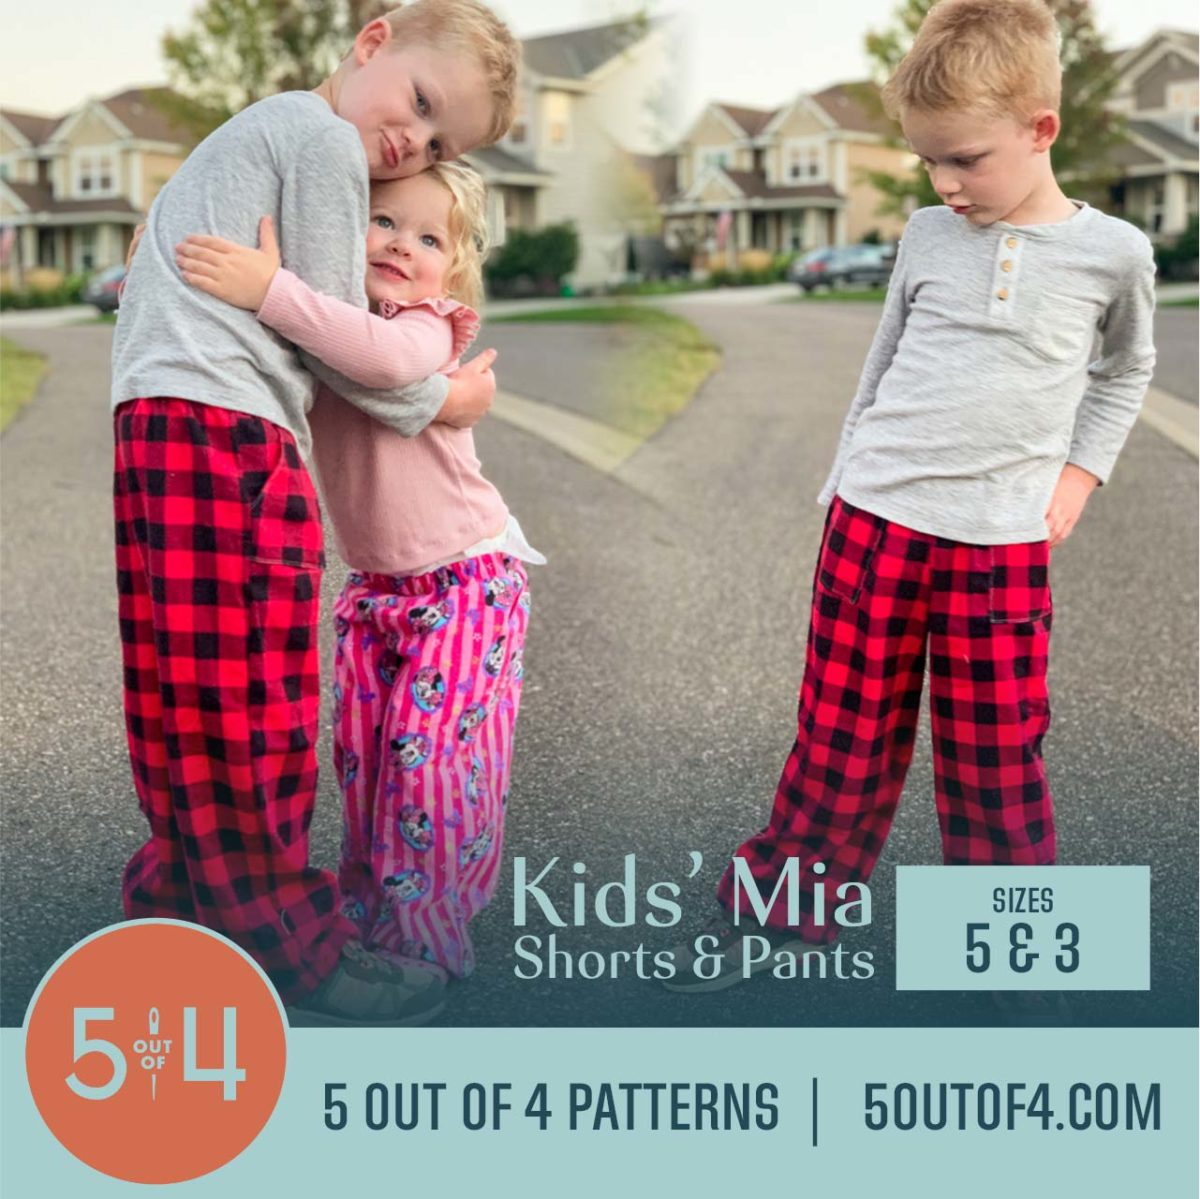 5oo4 Patterns Kids' Mia Pants Size 5 and 3